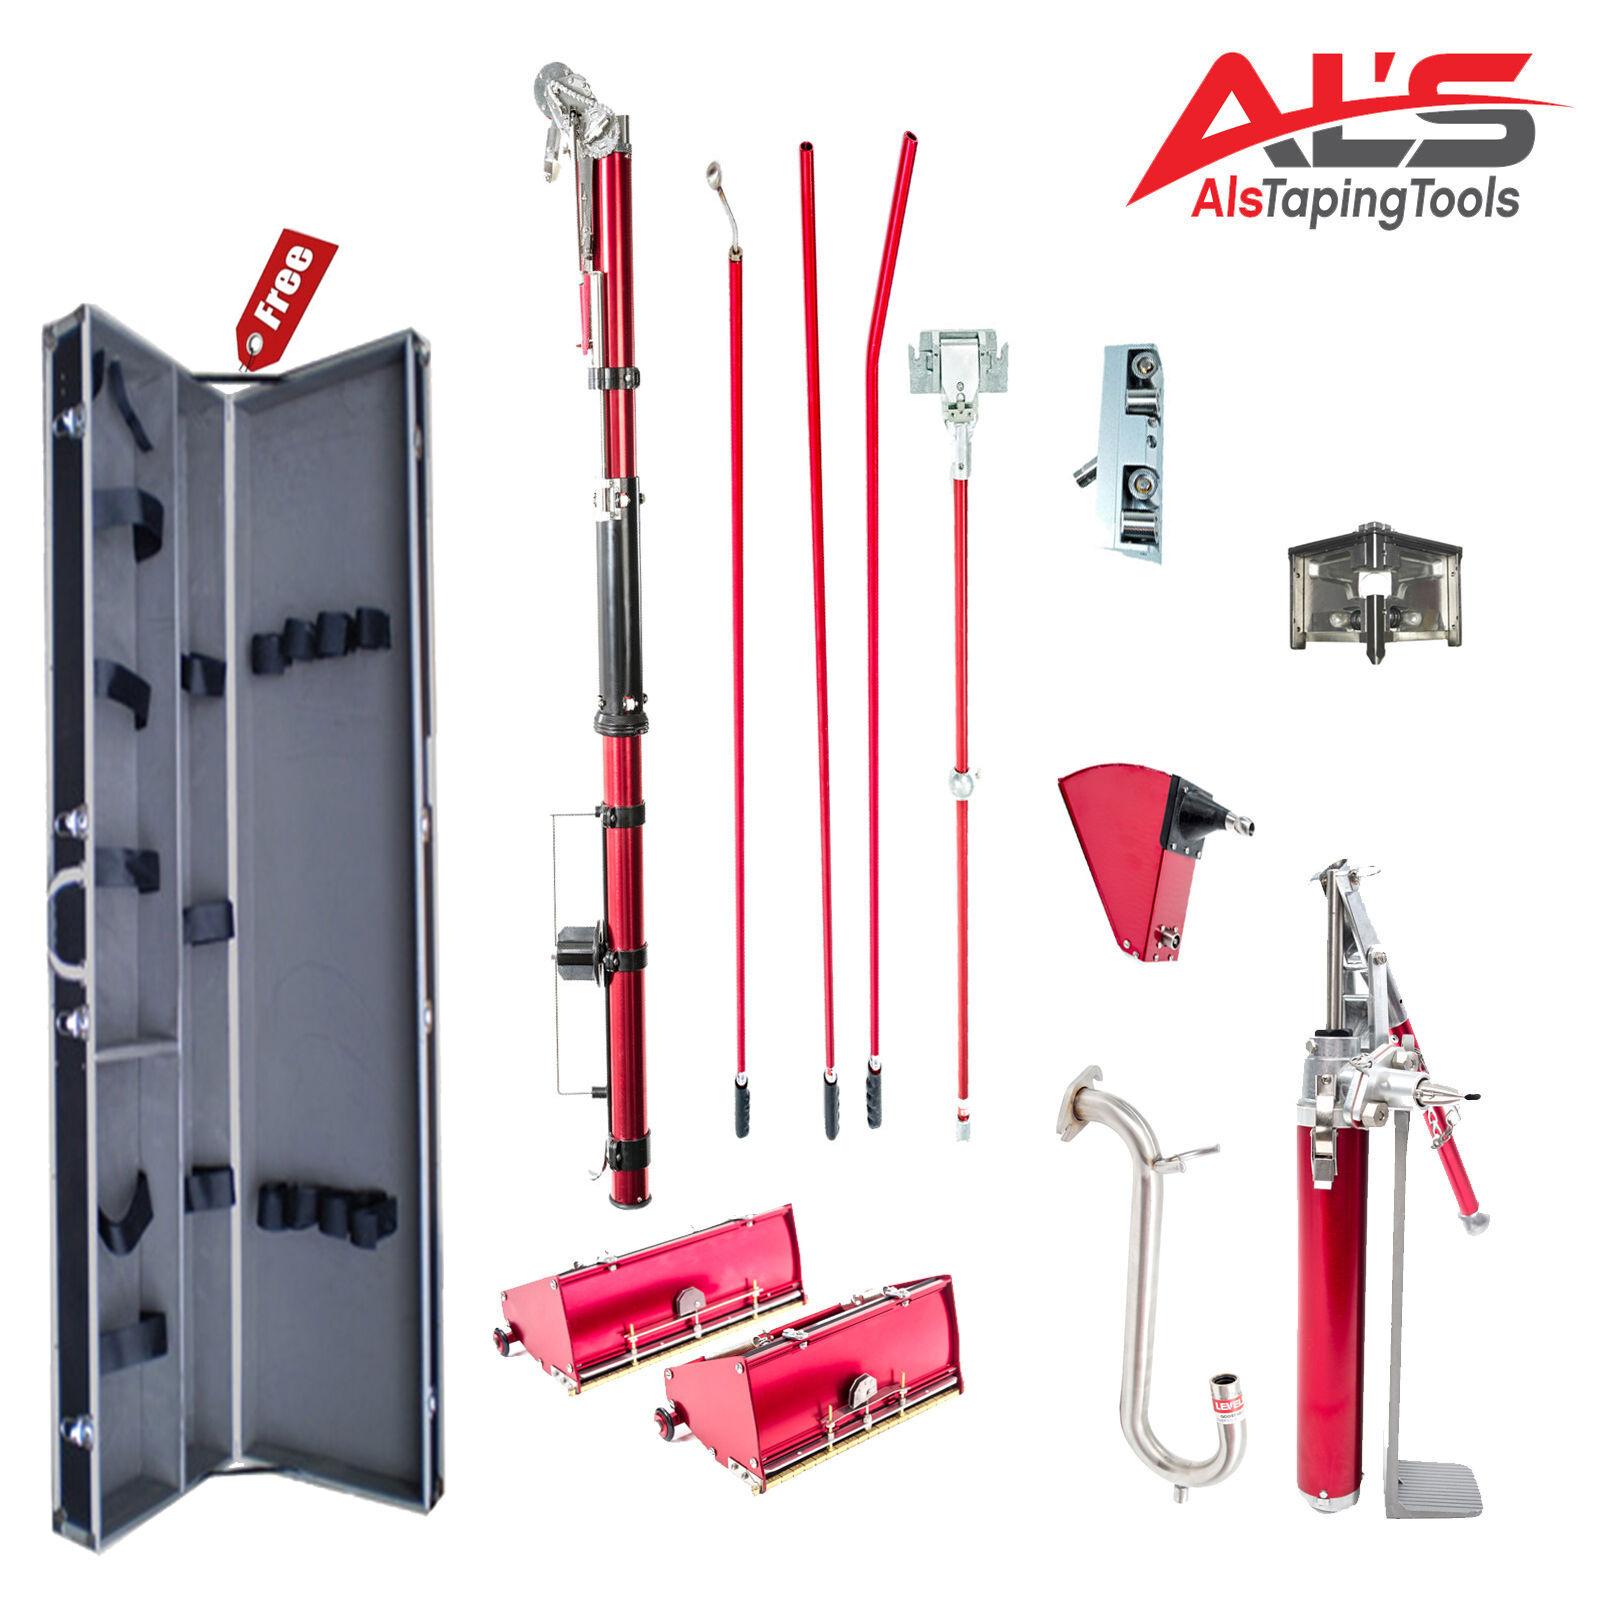 level5 full set of automatic drywall taping tools w free tool case